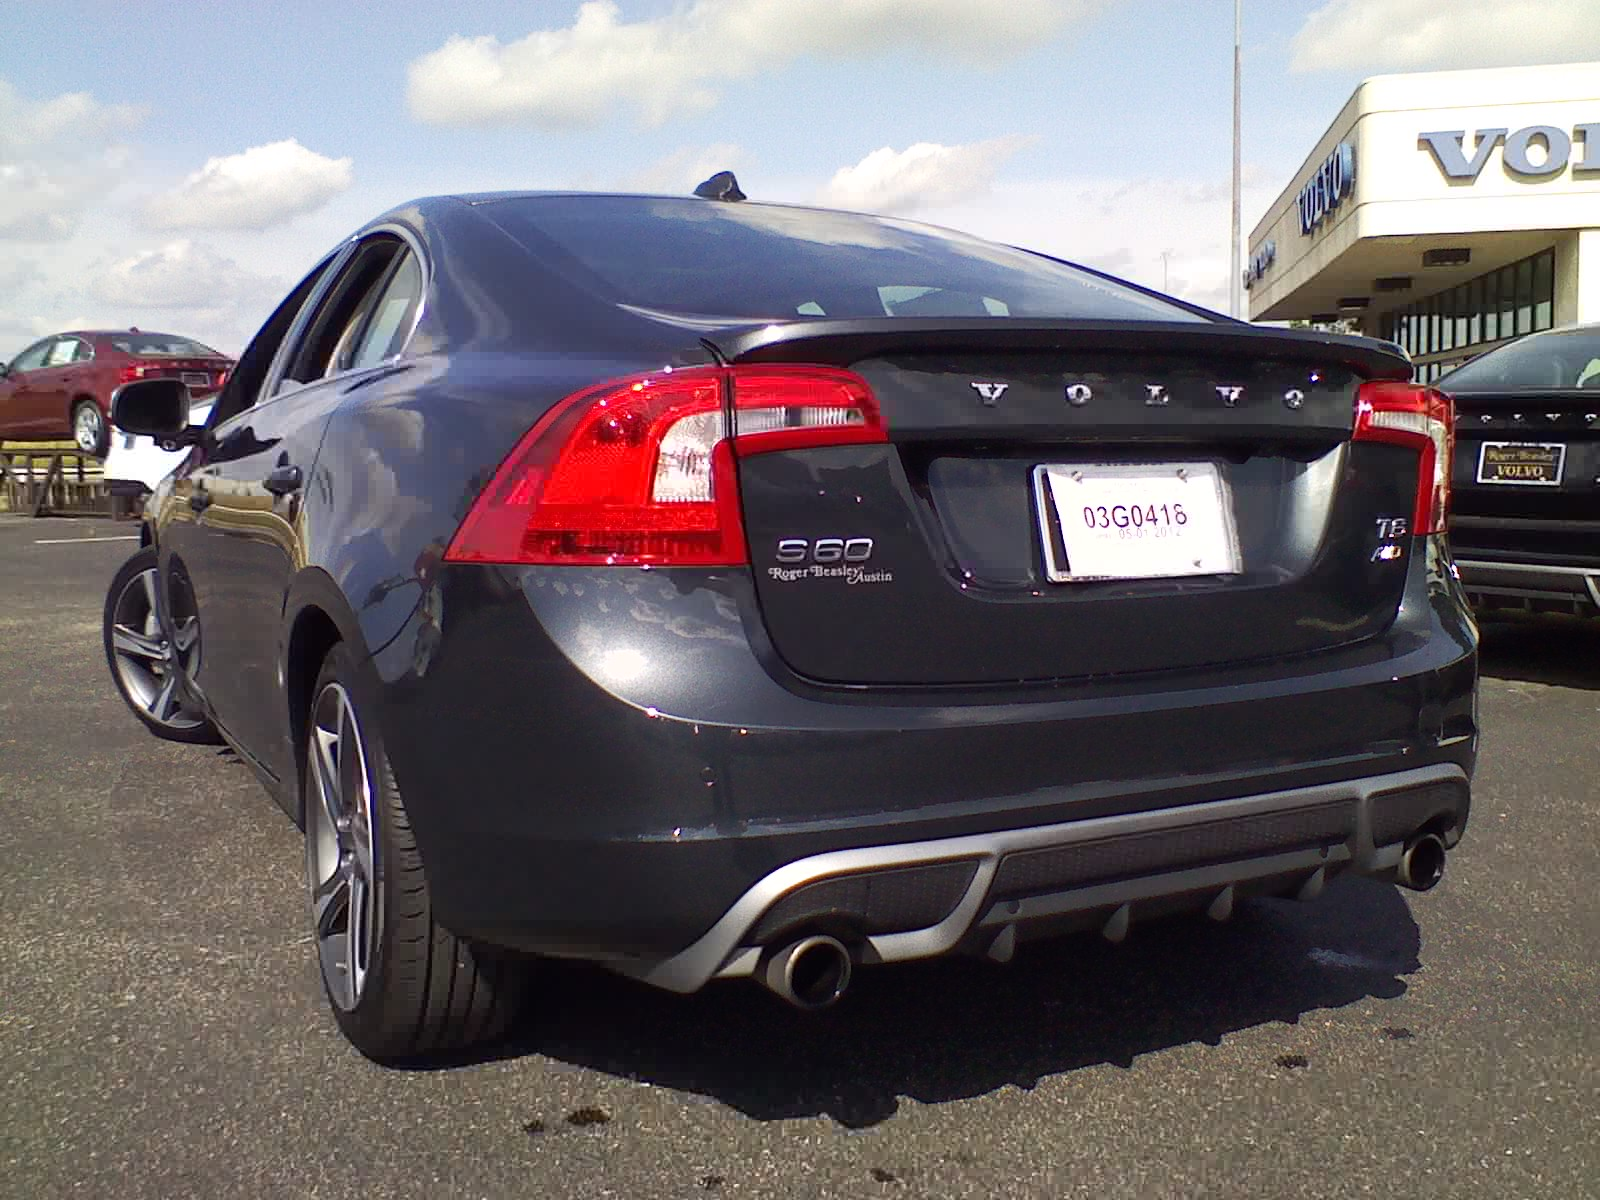 Volvo s60 savile grey metallic images - Super Excited Just Picked Up My S60 R Design Sevile Grey Totally Love It Best Volvo I Ve Ever Owned